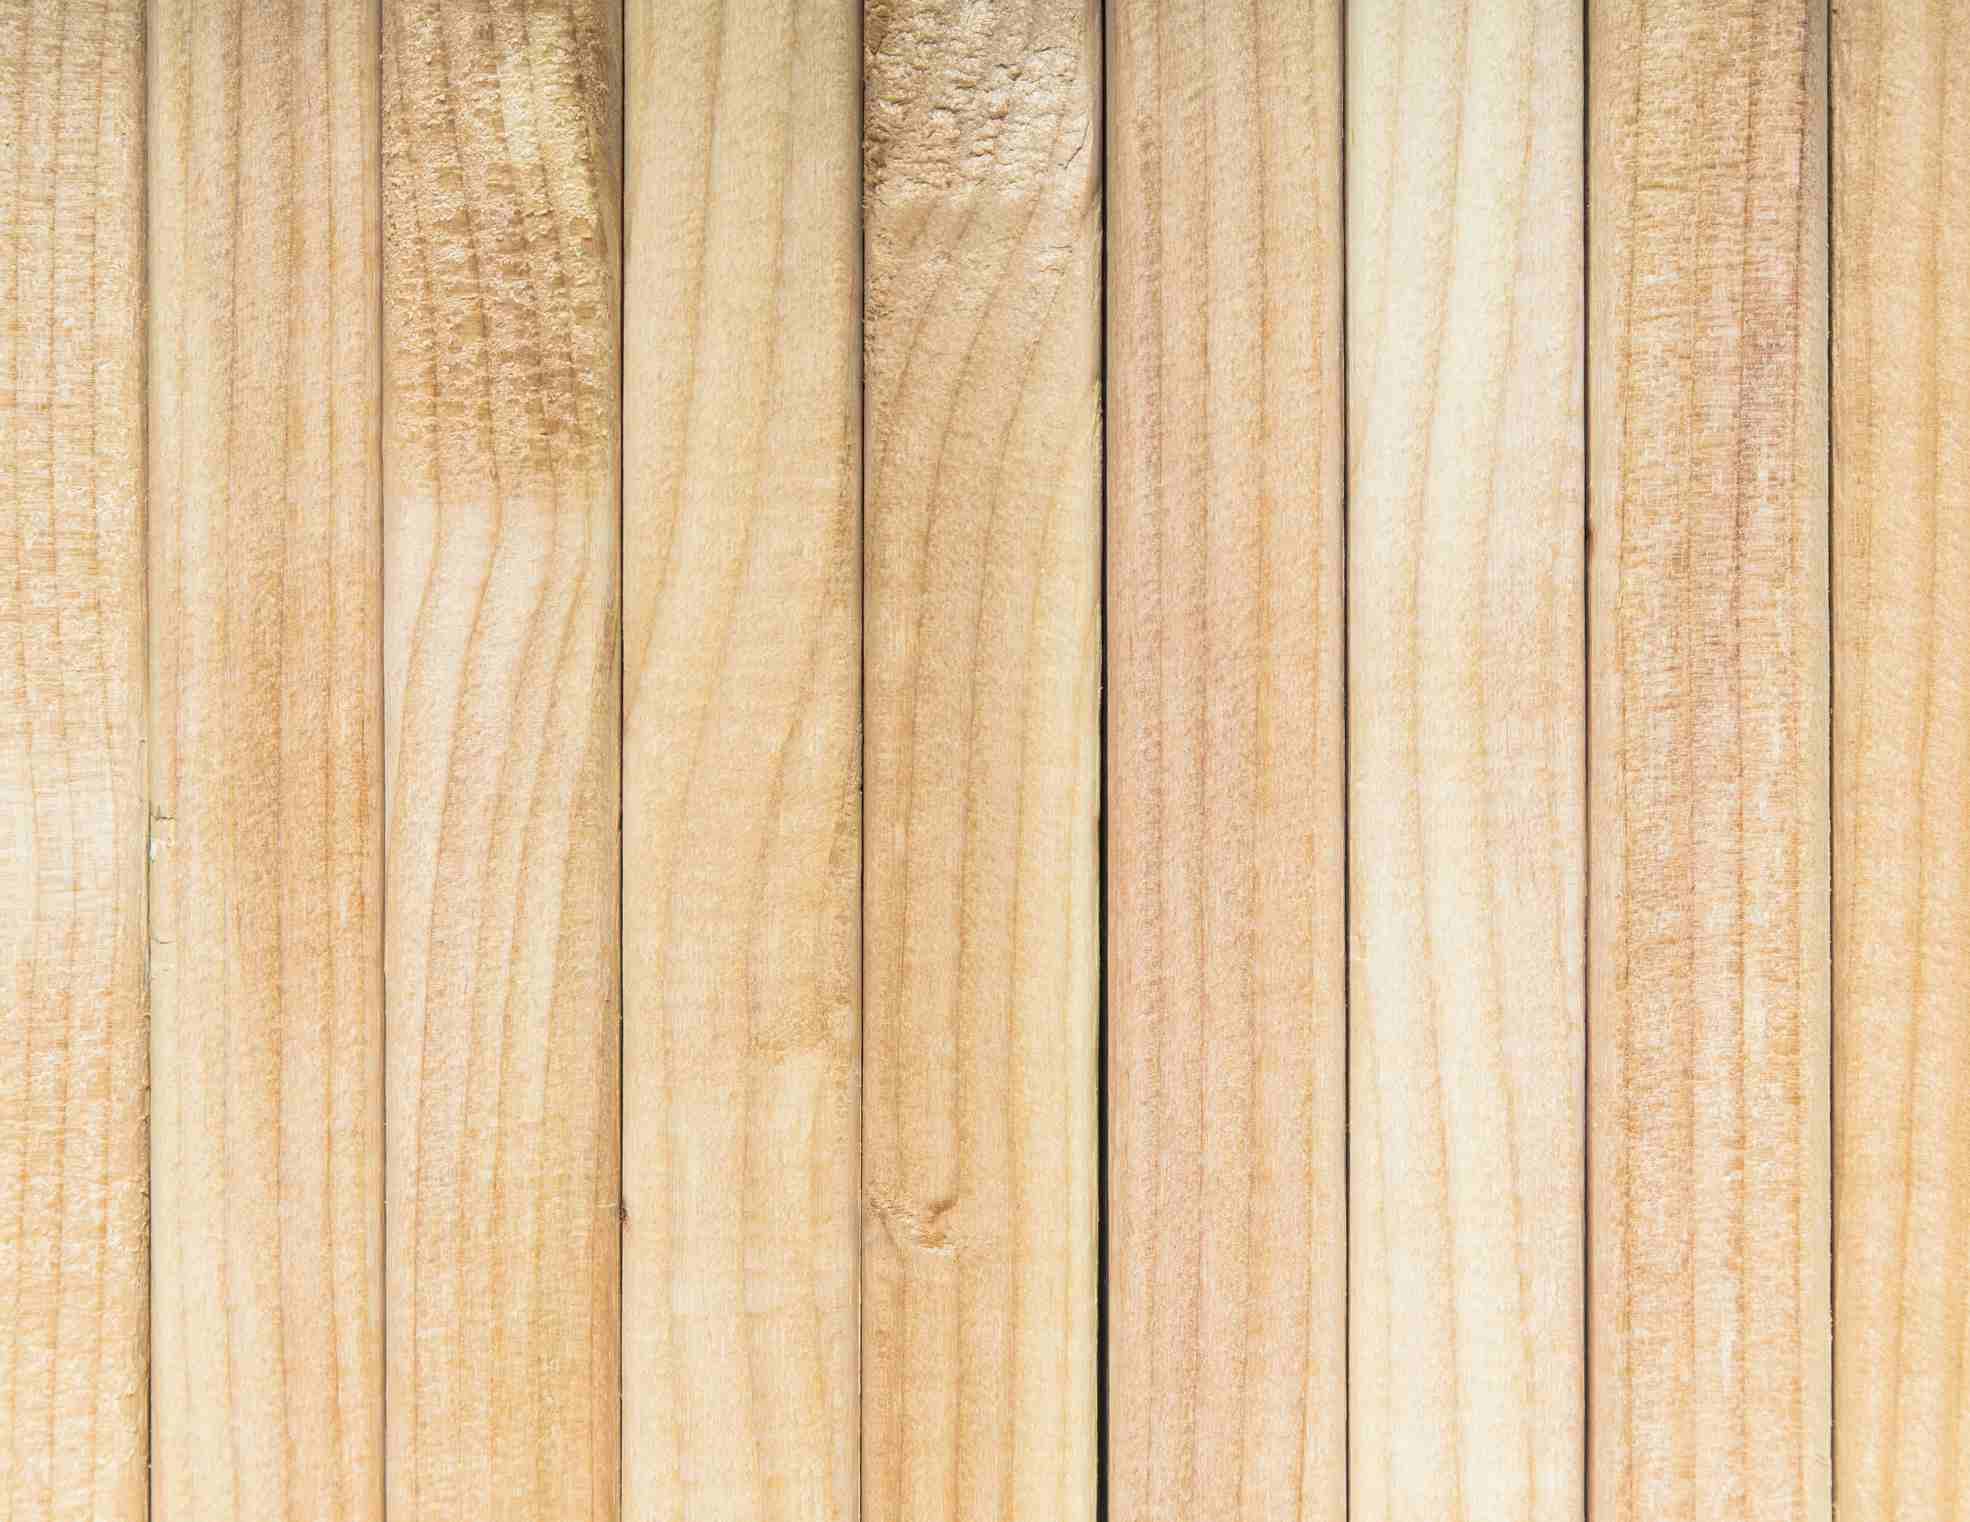 Hardwood Flooring Utah County Of Standing Timber Prices for Loggers Pertaining to Gettyimages 159395853 57824f815f9b5831b575e3ea